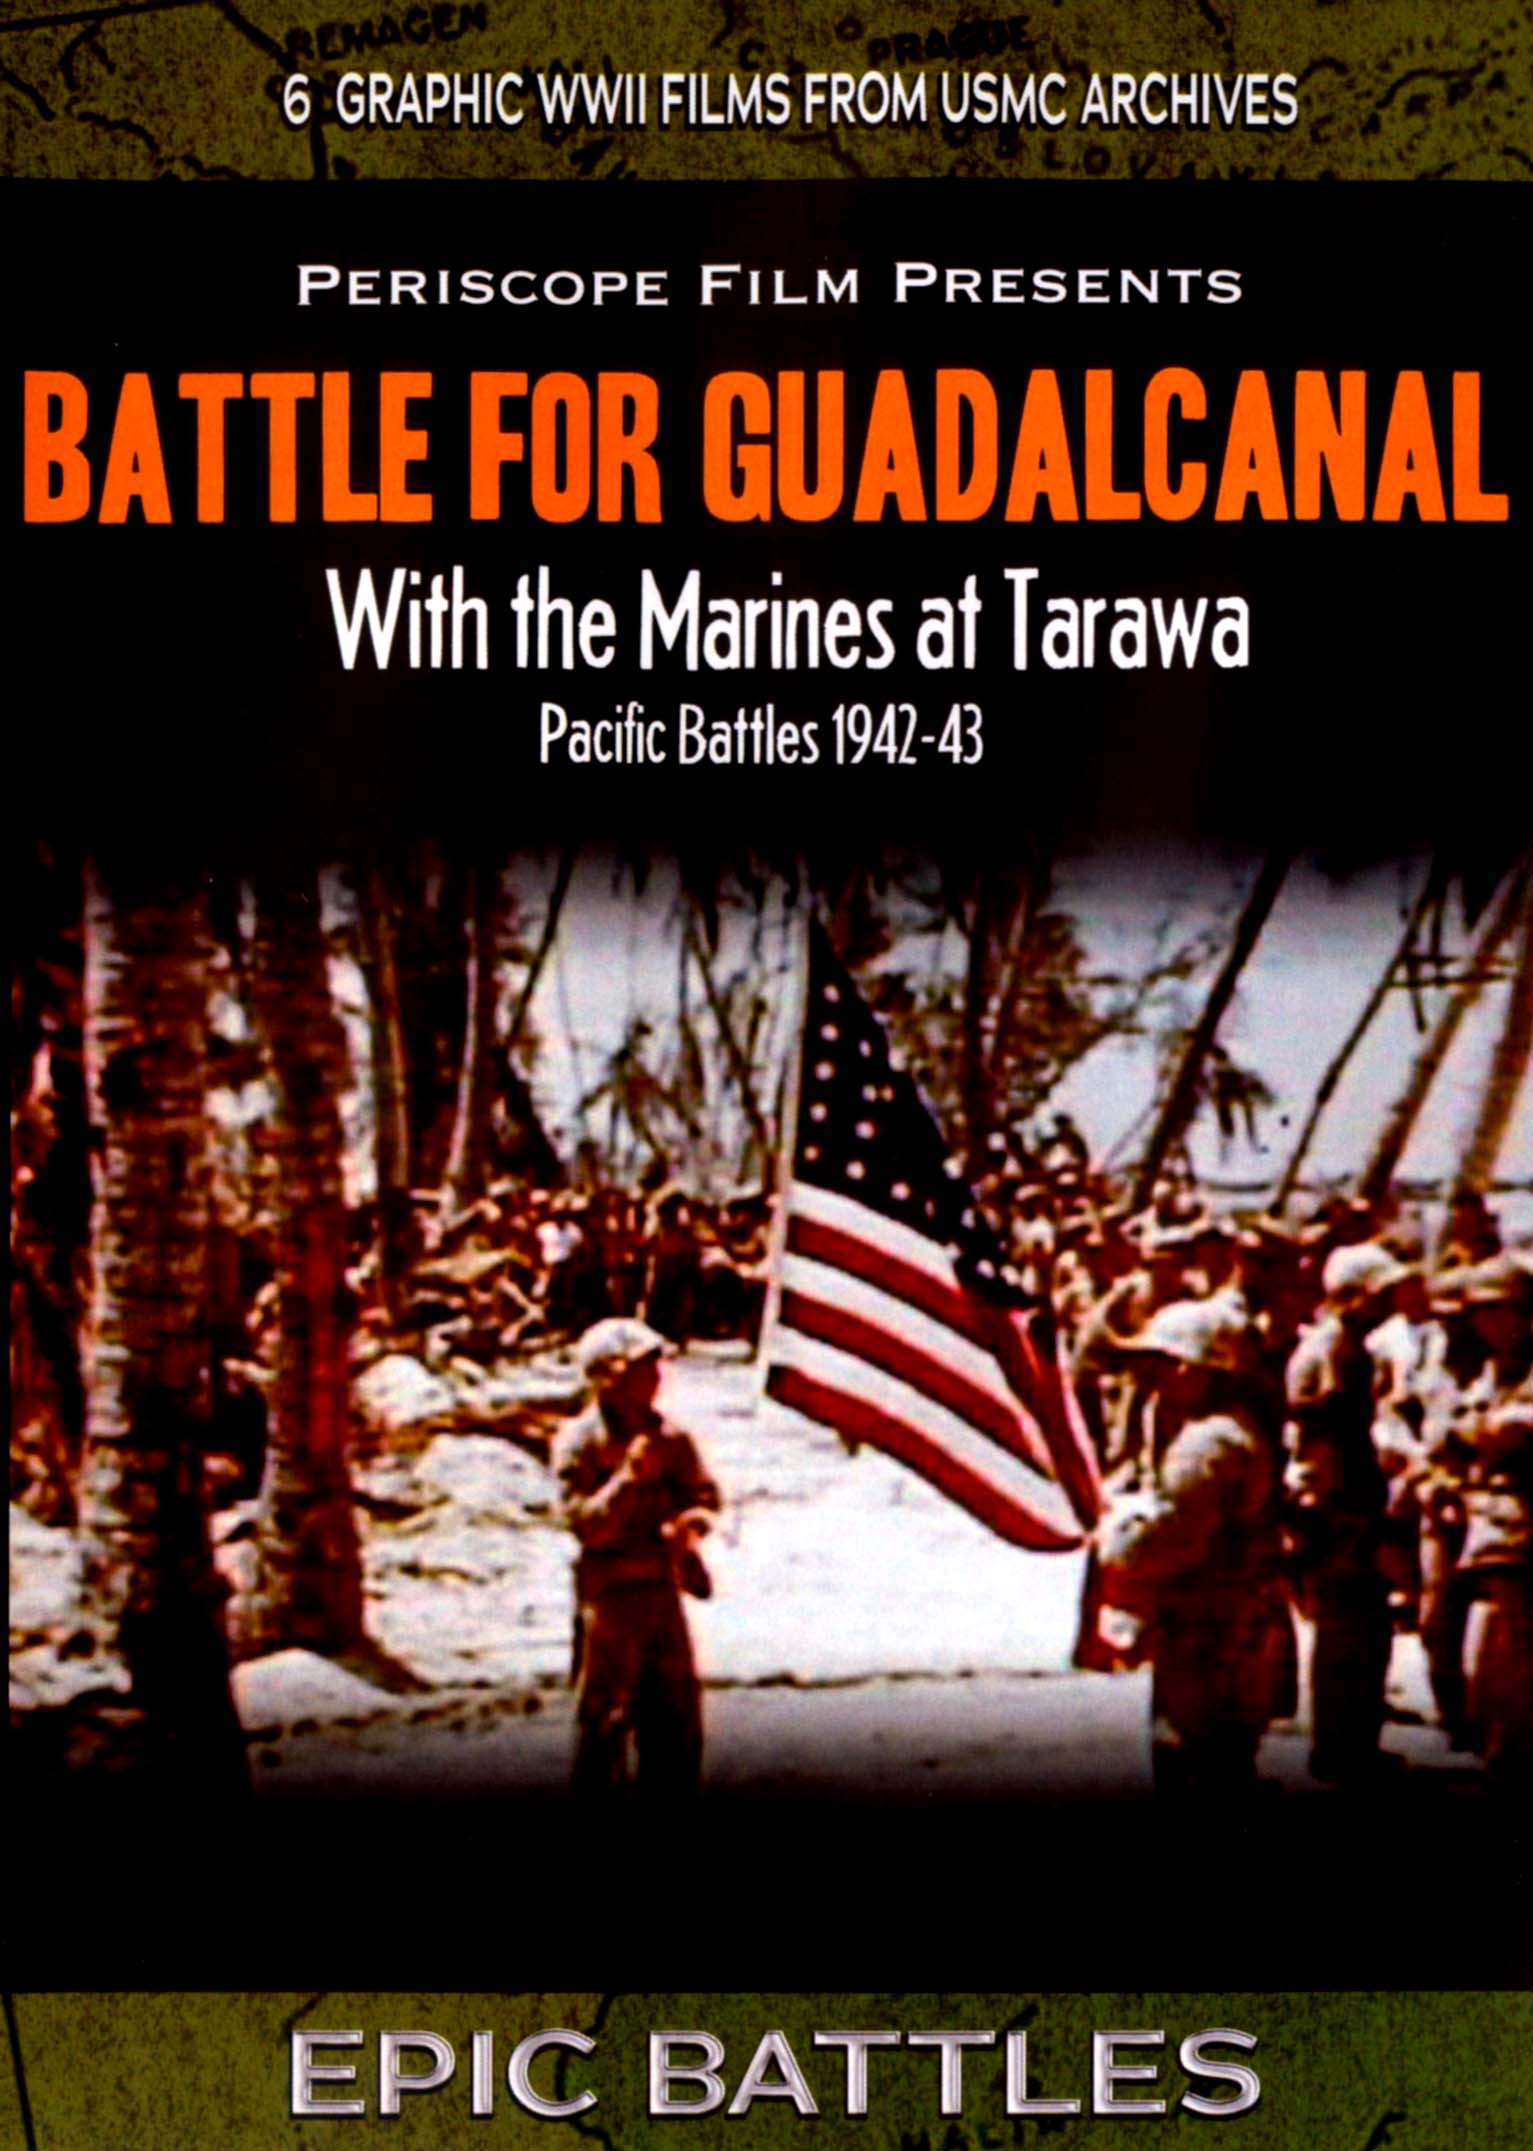 Battle for Guadalcanal: With the Marines at Tarawa